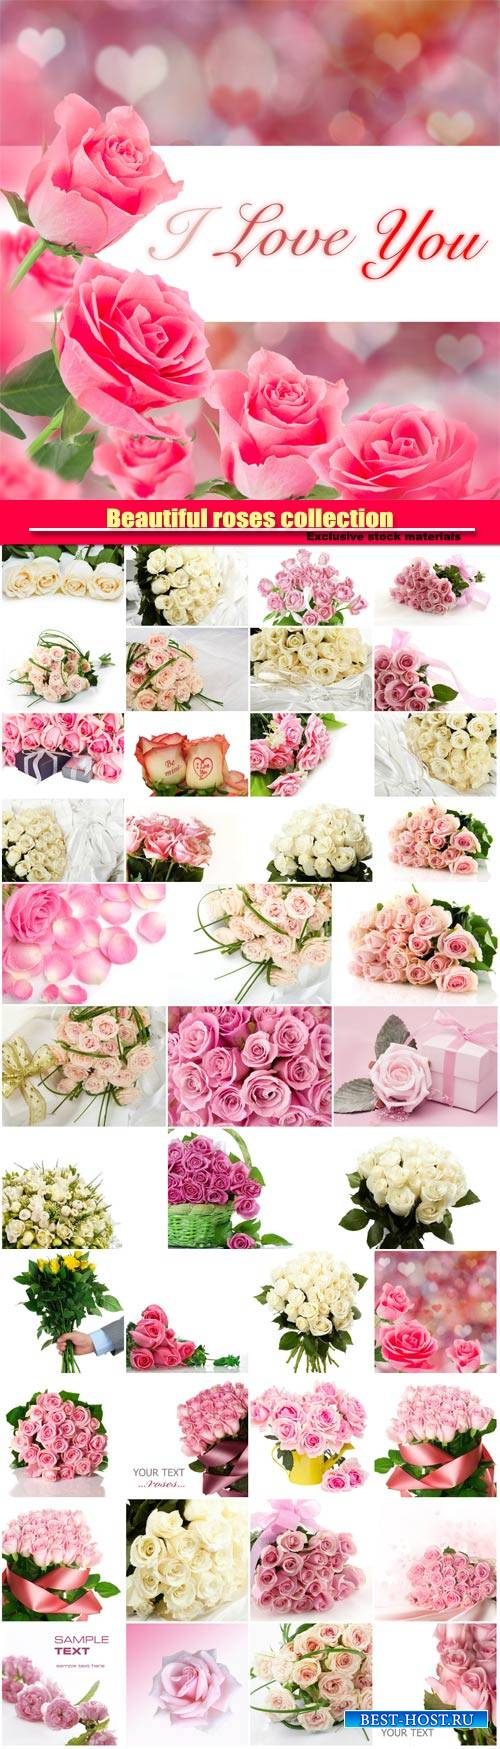 Beautiful pink and white roses, collection of romantic backgrounds